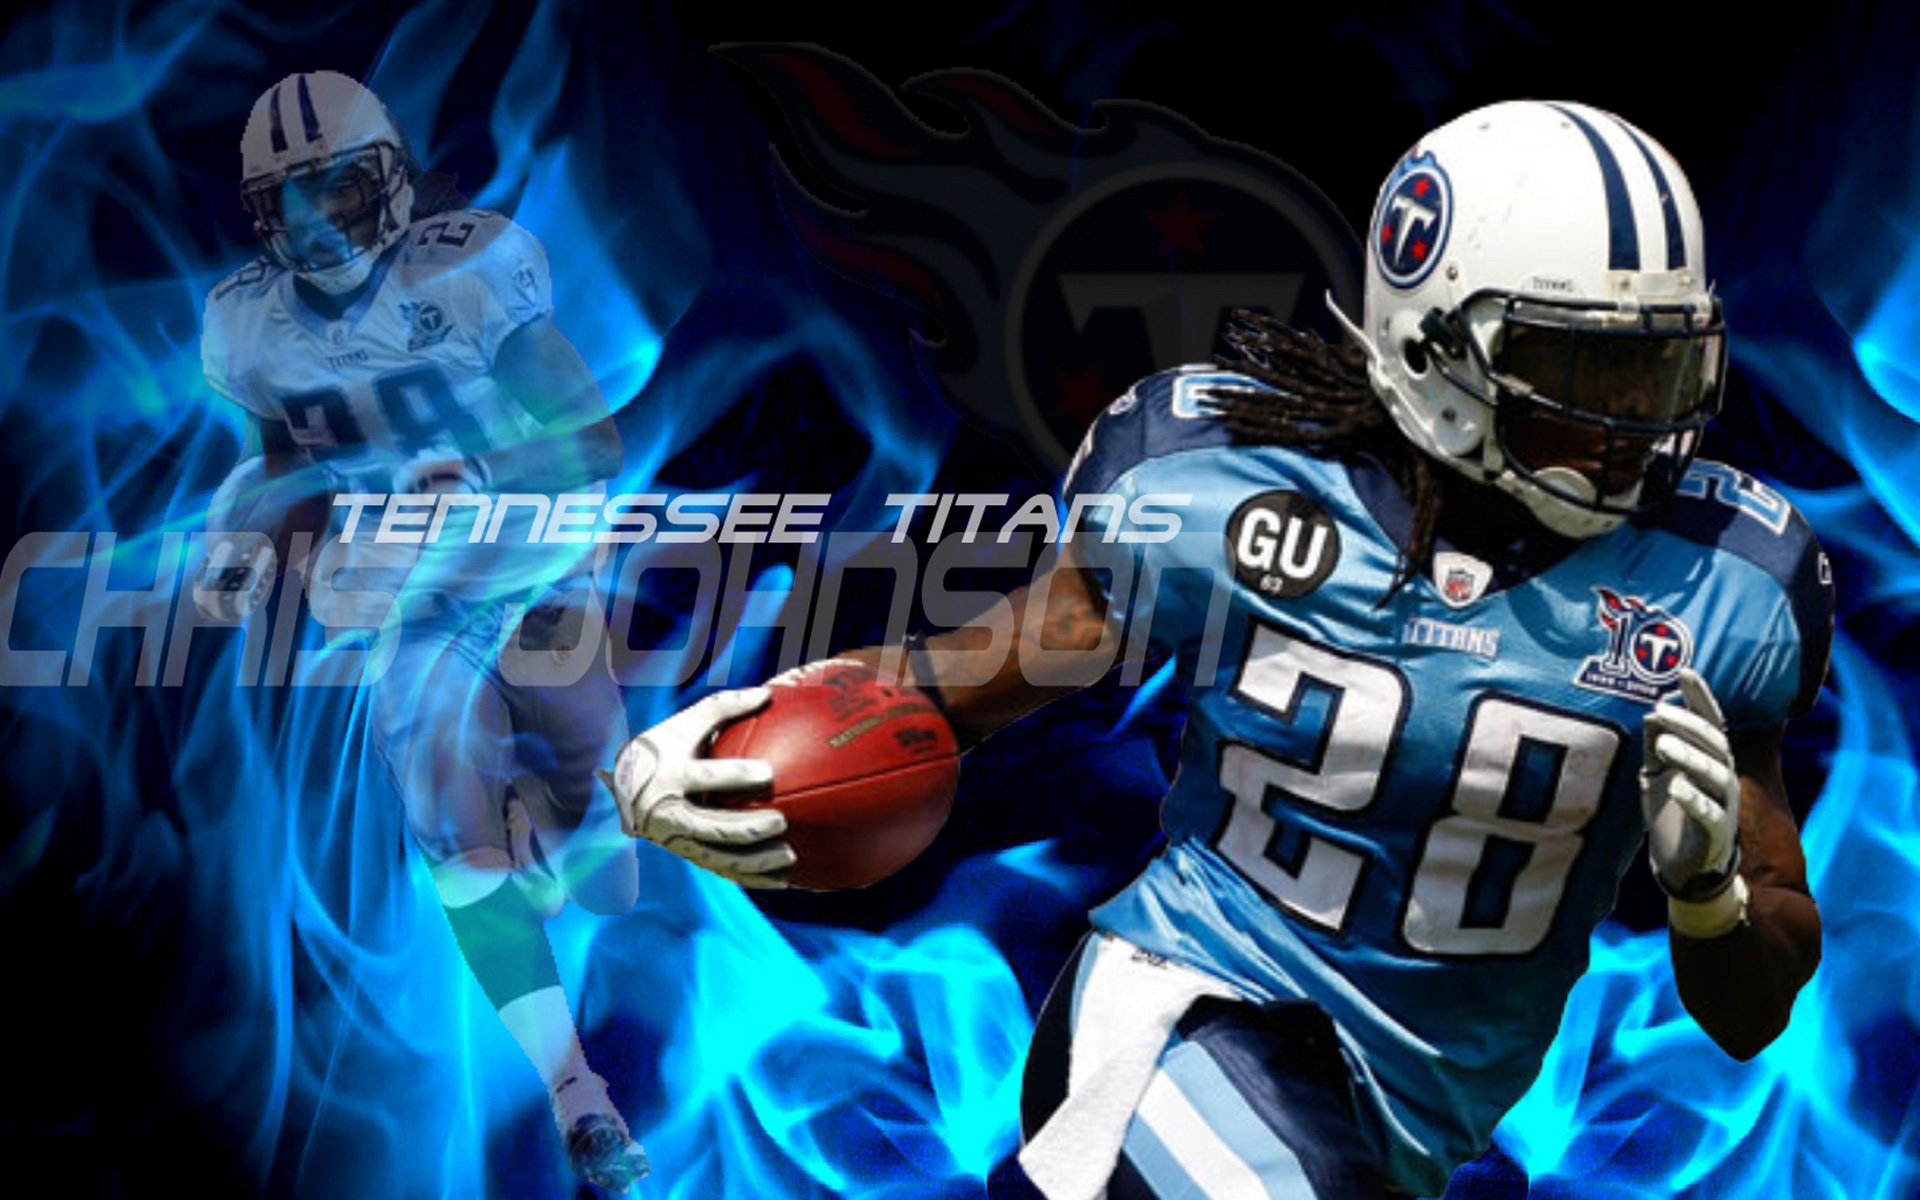 TENNESSEE TITANS nfl football c wallpaper 1920x1200 1920x1200